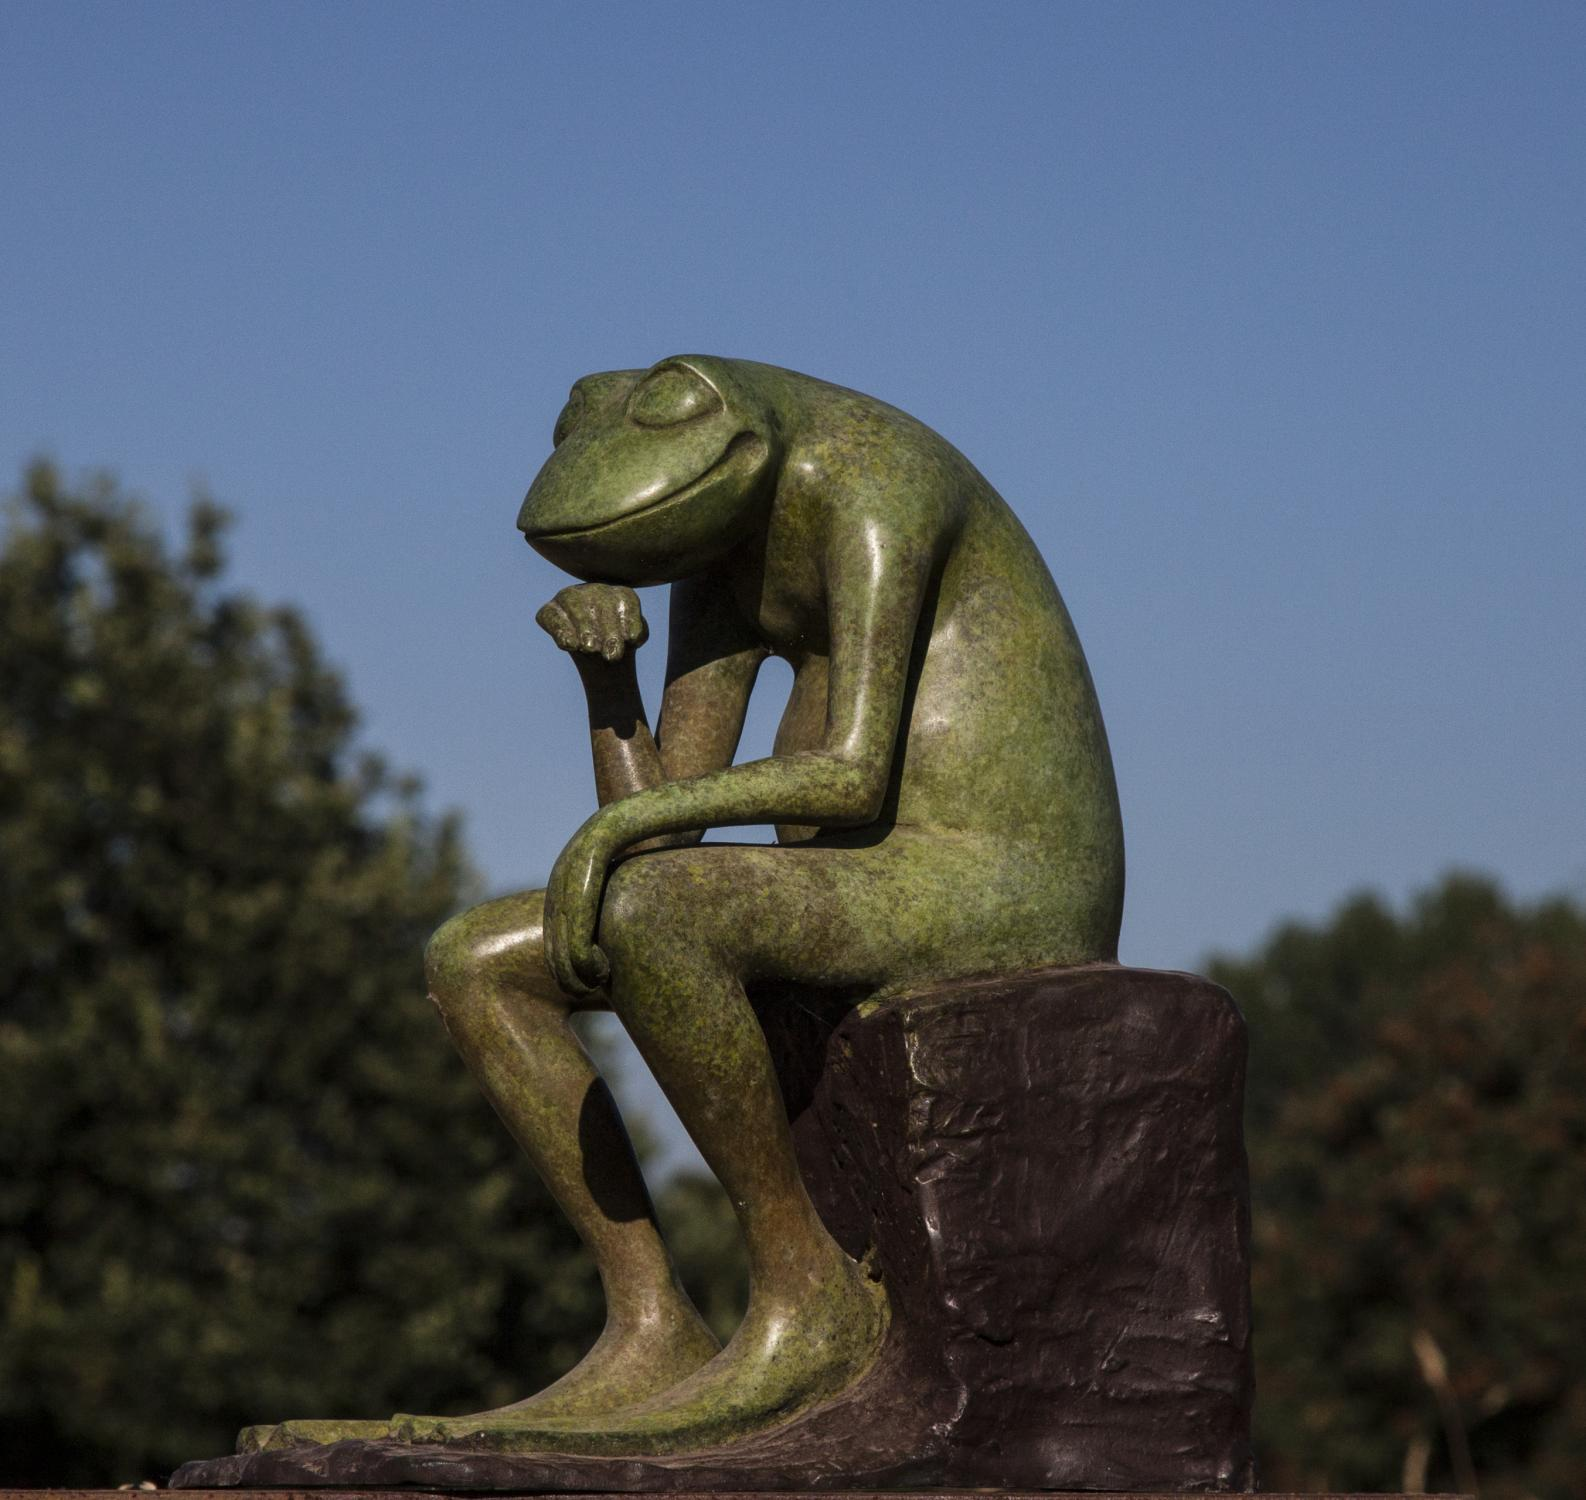 Lot 26 - Sculpture: David Meredith, The Thinker Frog, Bronze, 30cm high by 27cm wide by 17cm deep